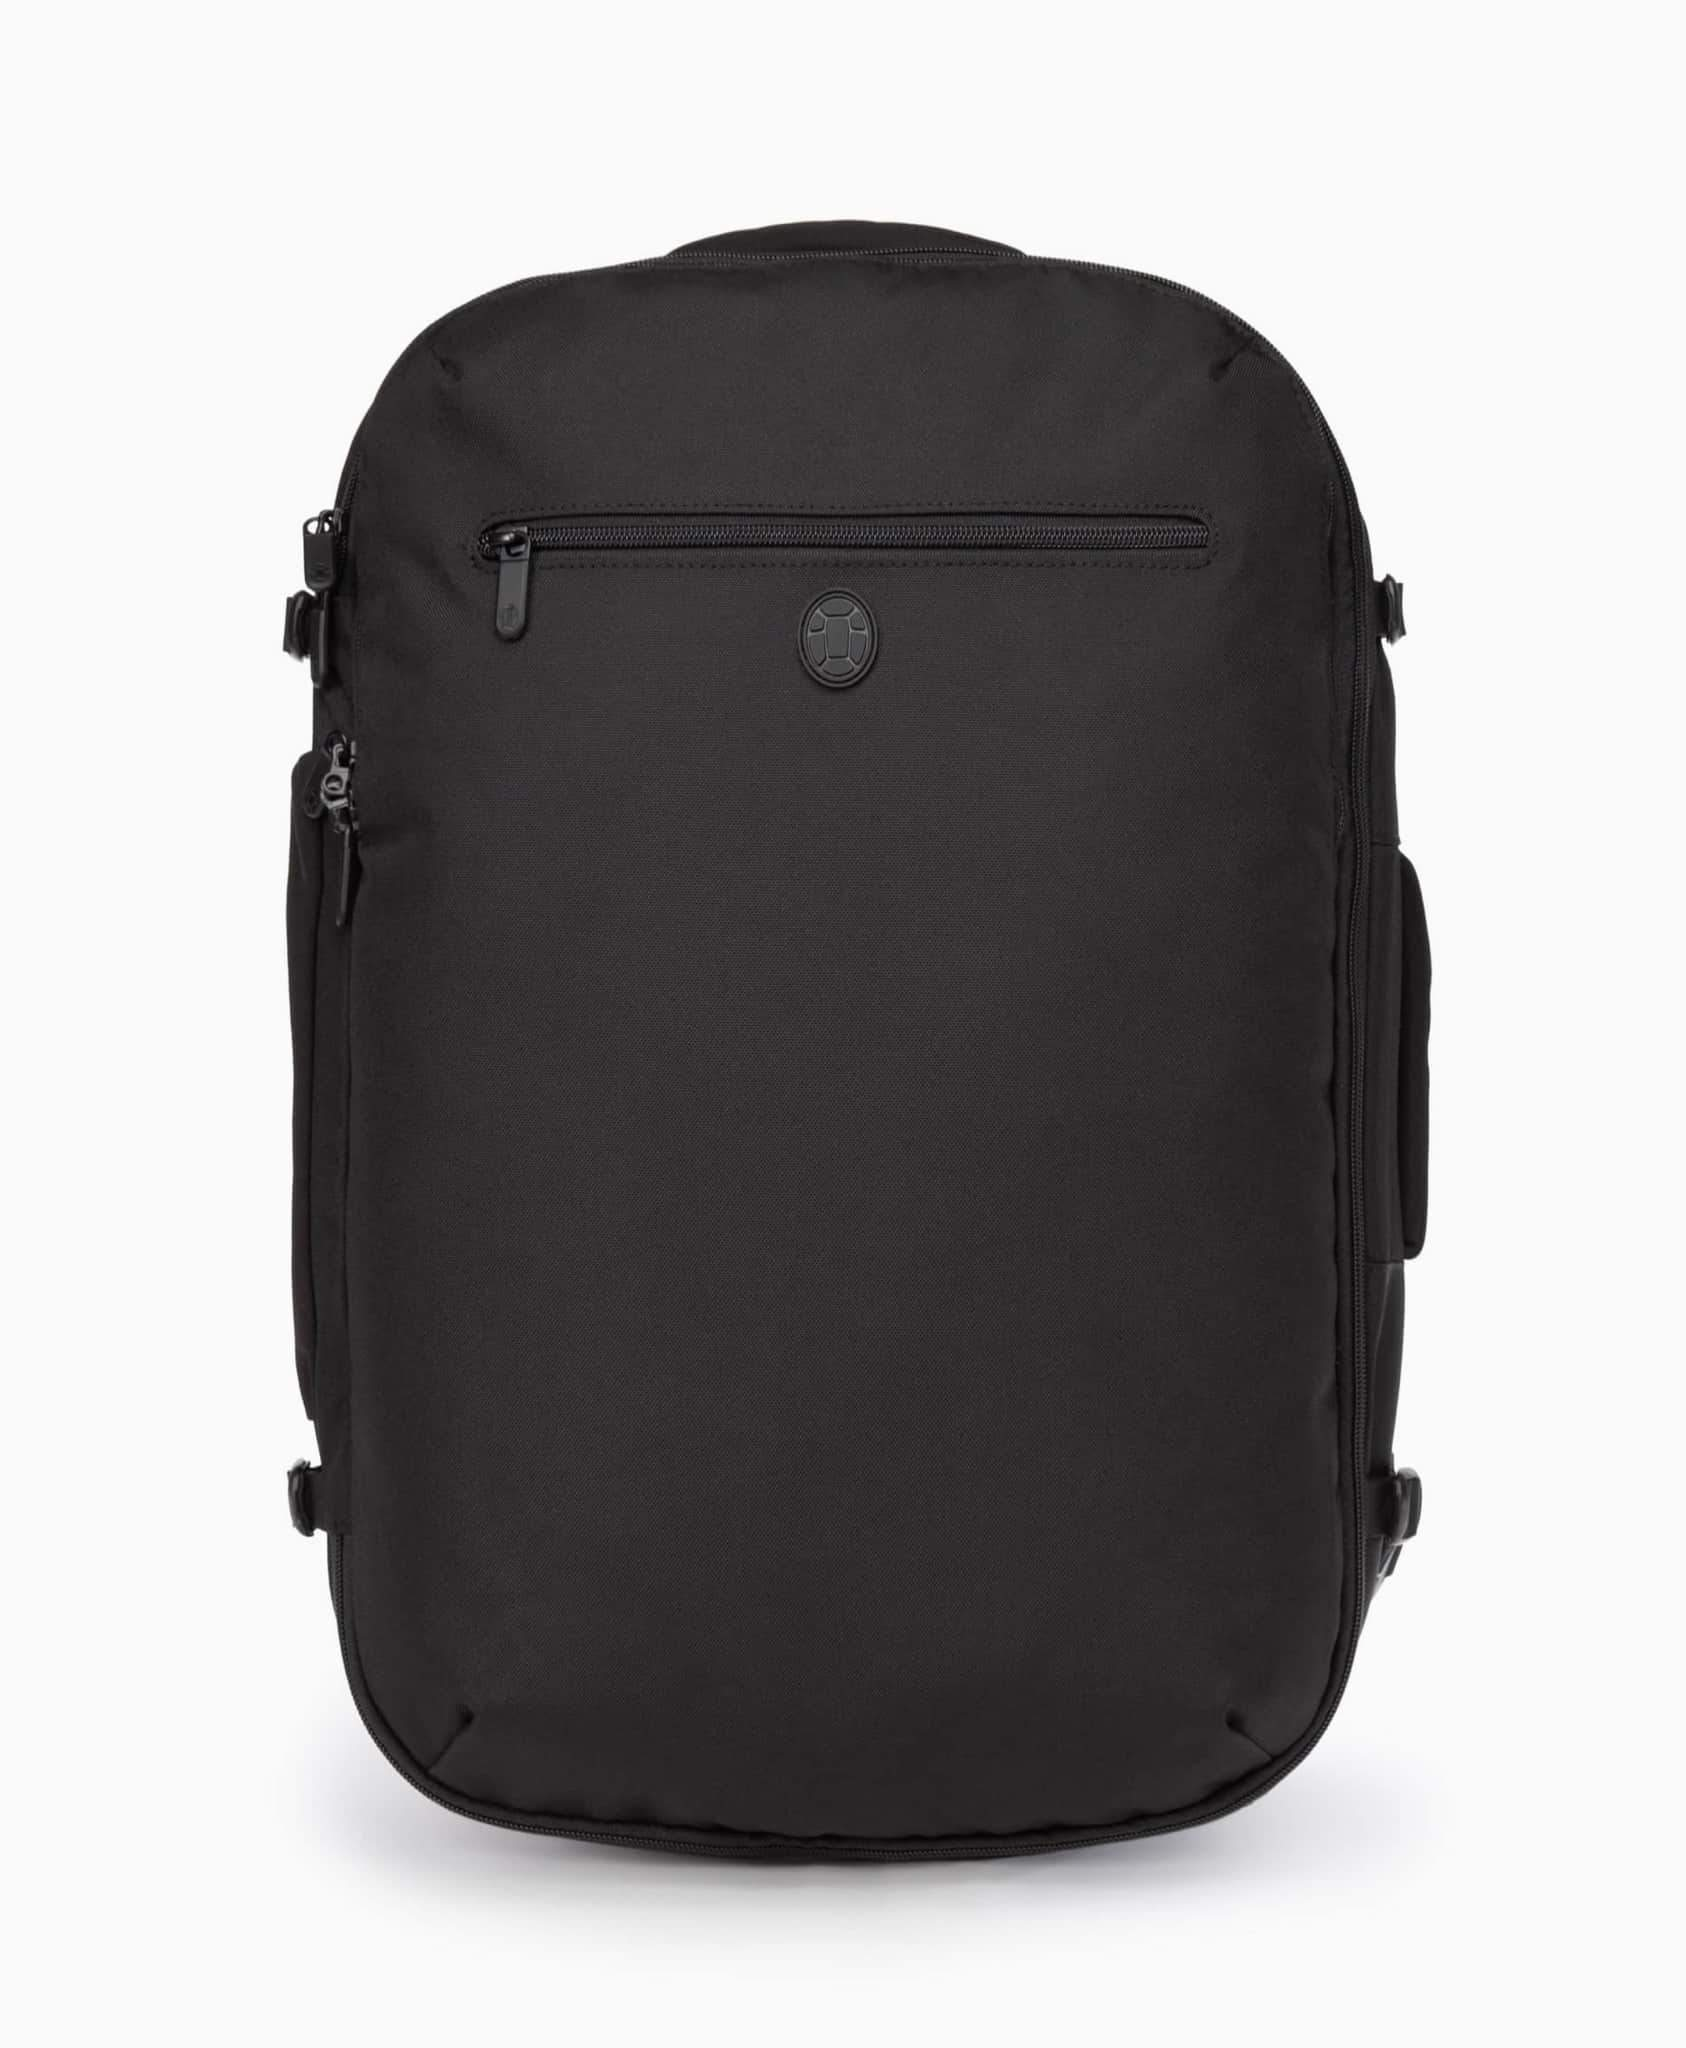 product/ 45L: Max-sized US carry on